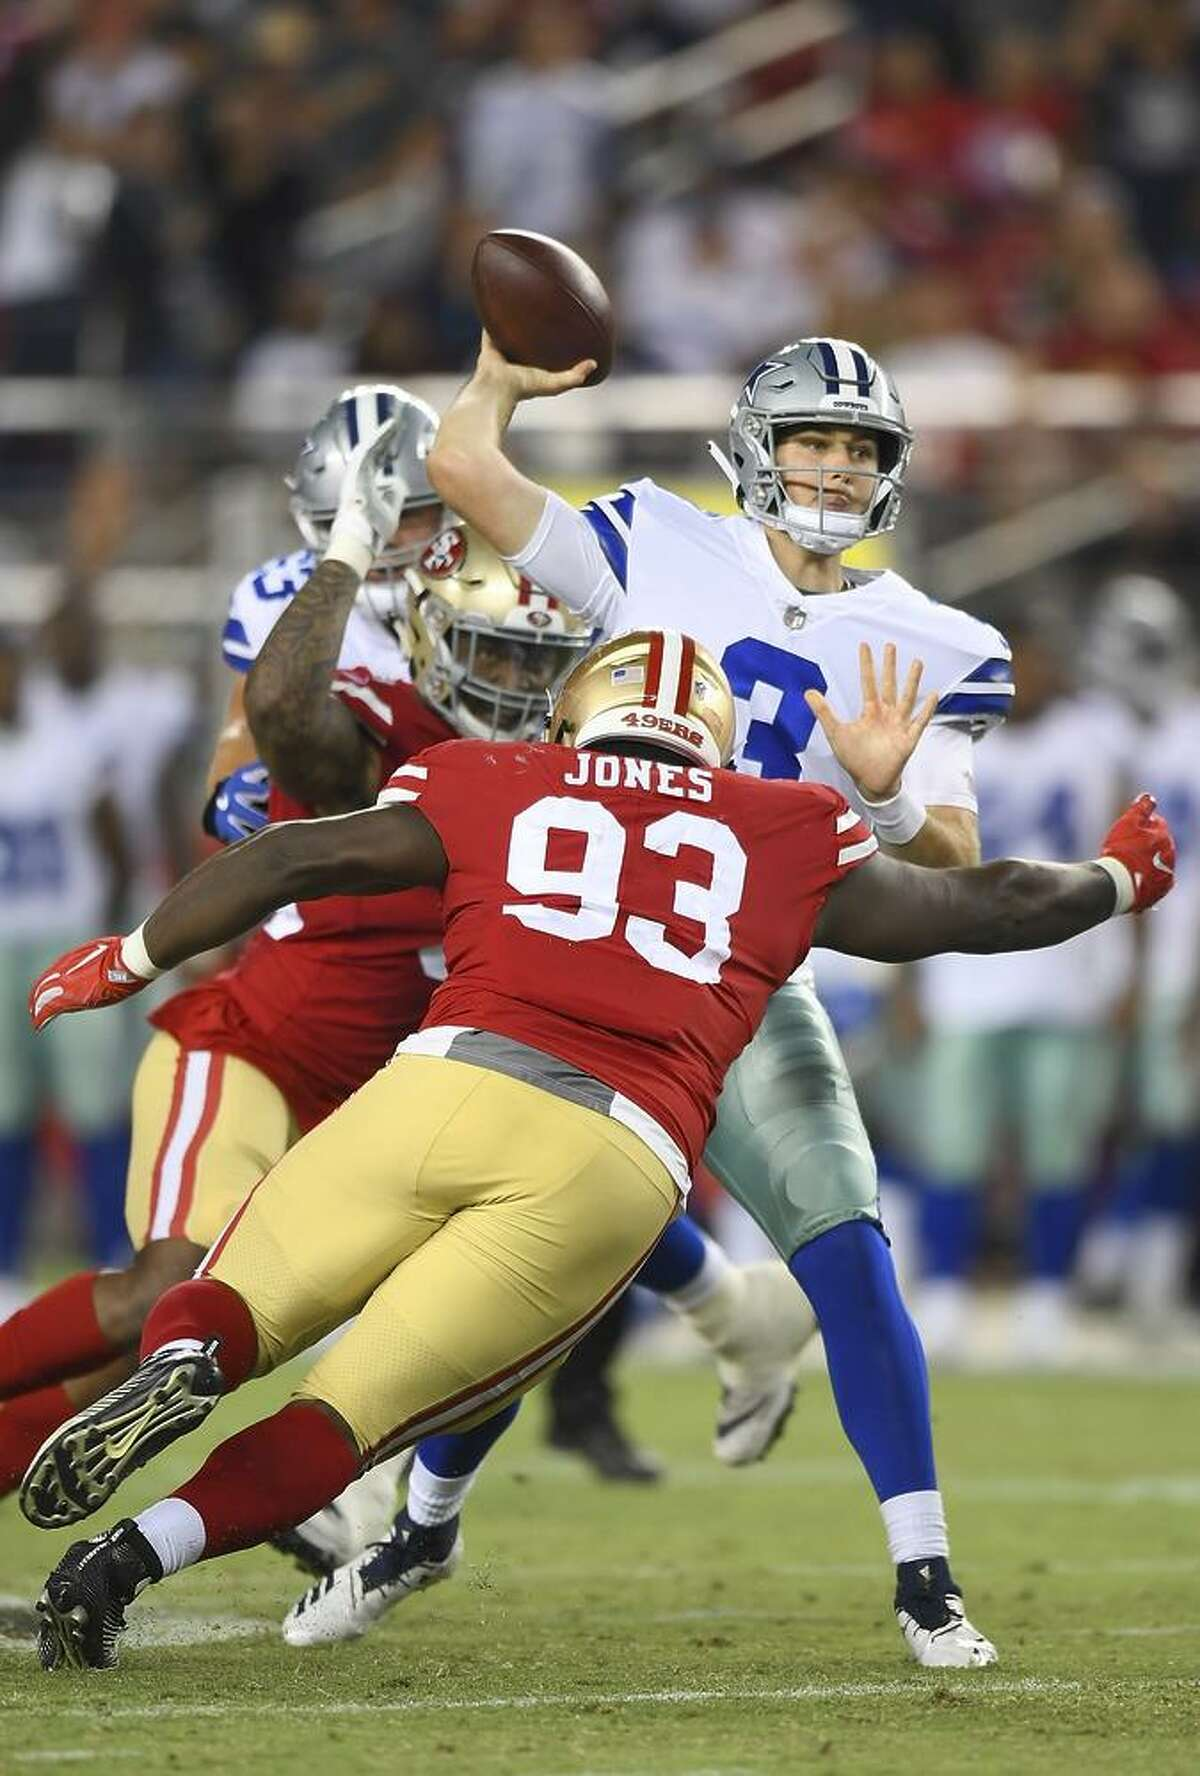 D.J. Jones puts pressure on Cowboys quarterback Mike White in the 49ers' preseason opener. Jones had three tackles and forced a fumble in last week's loss at Houston, where he earned the highest grade among 49ers defenders from Pro Football Focus.